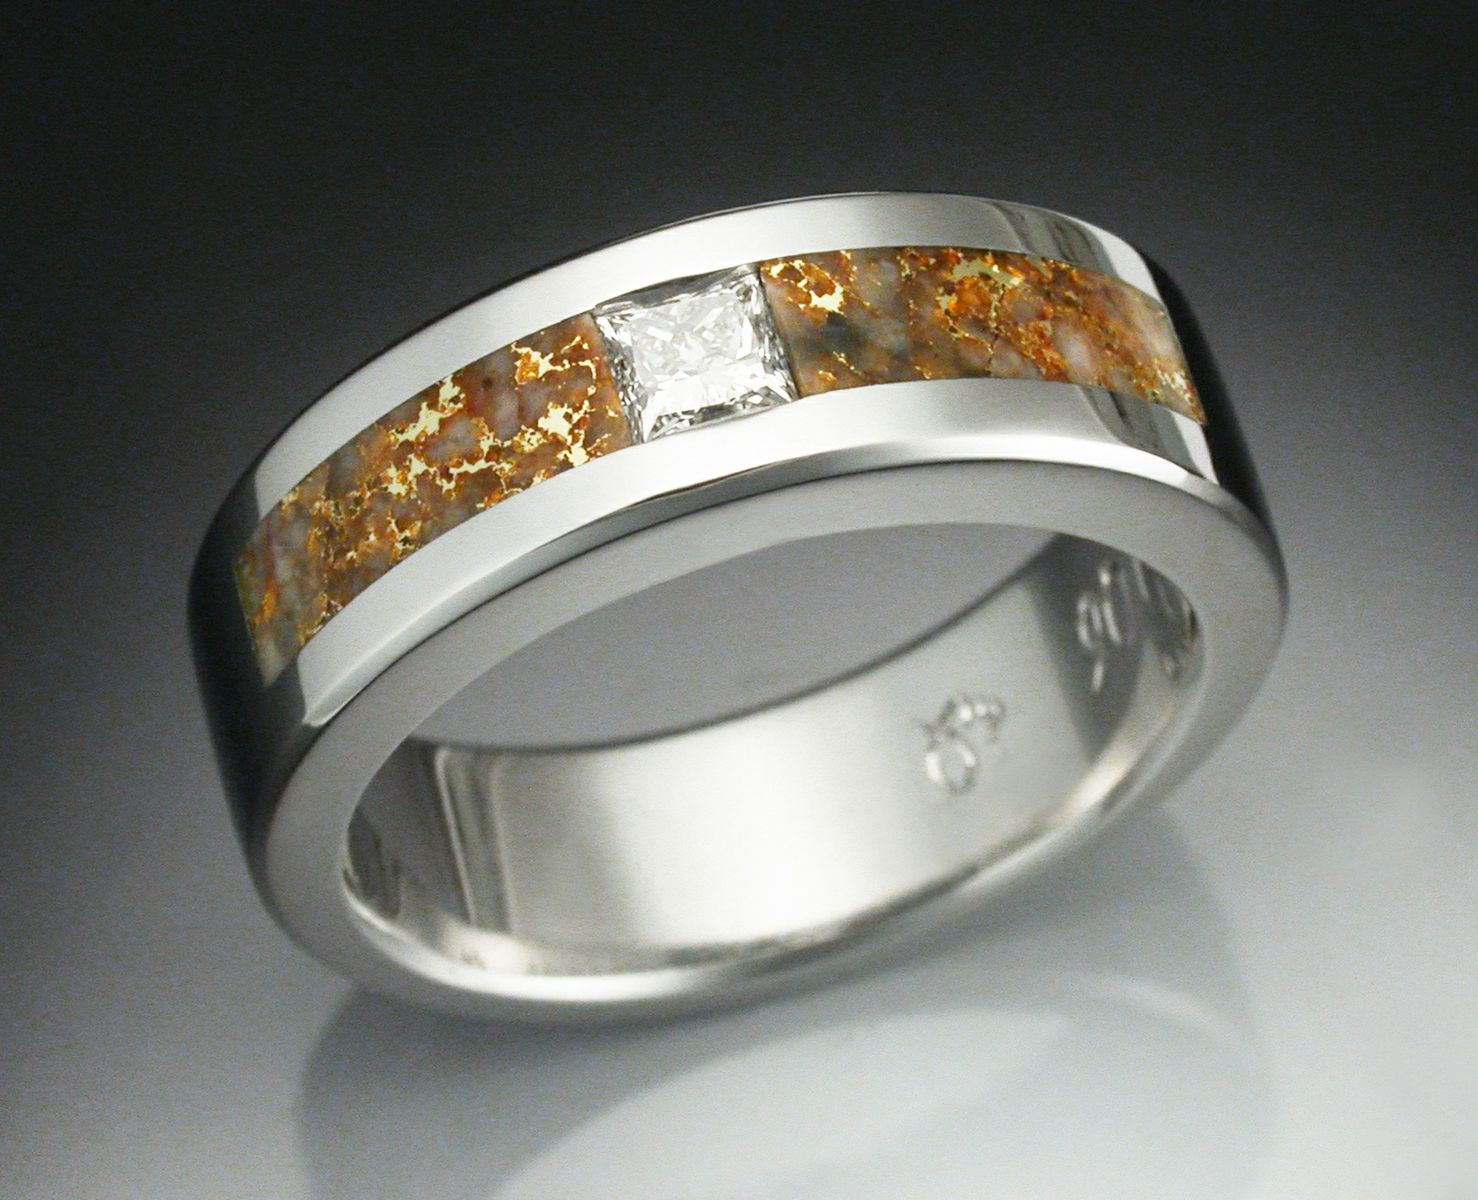 titanium pure gold and ring mans wedding custom wes s made wesandgold by rings man